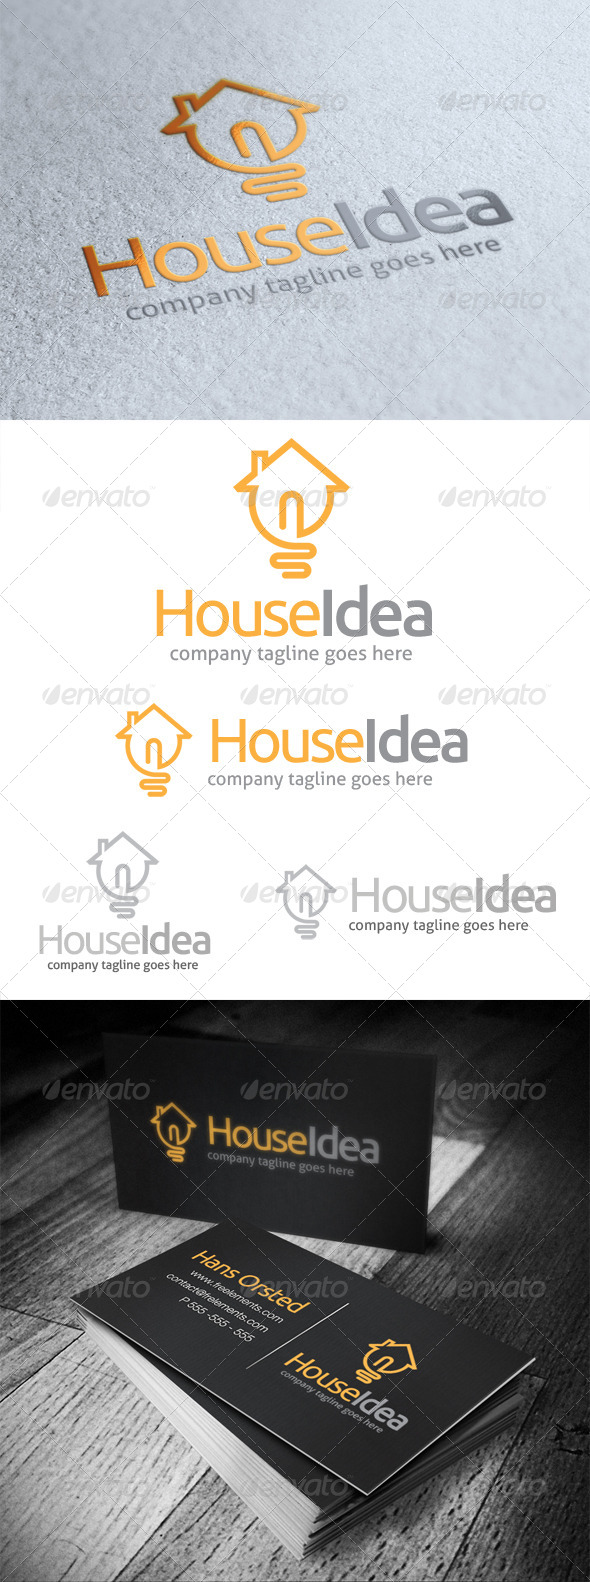 House Idea Logo - Buildings Logo Templates